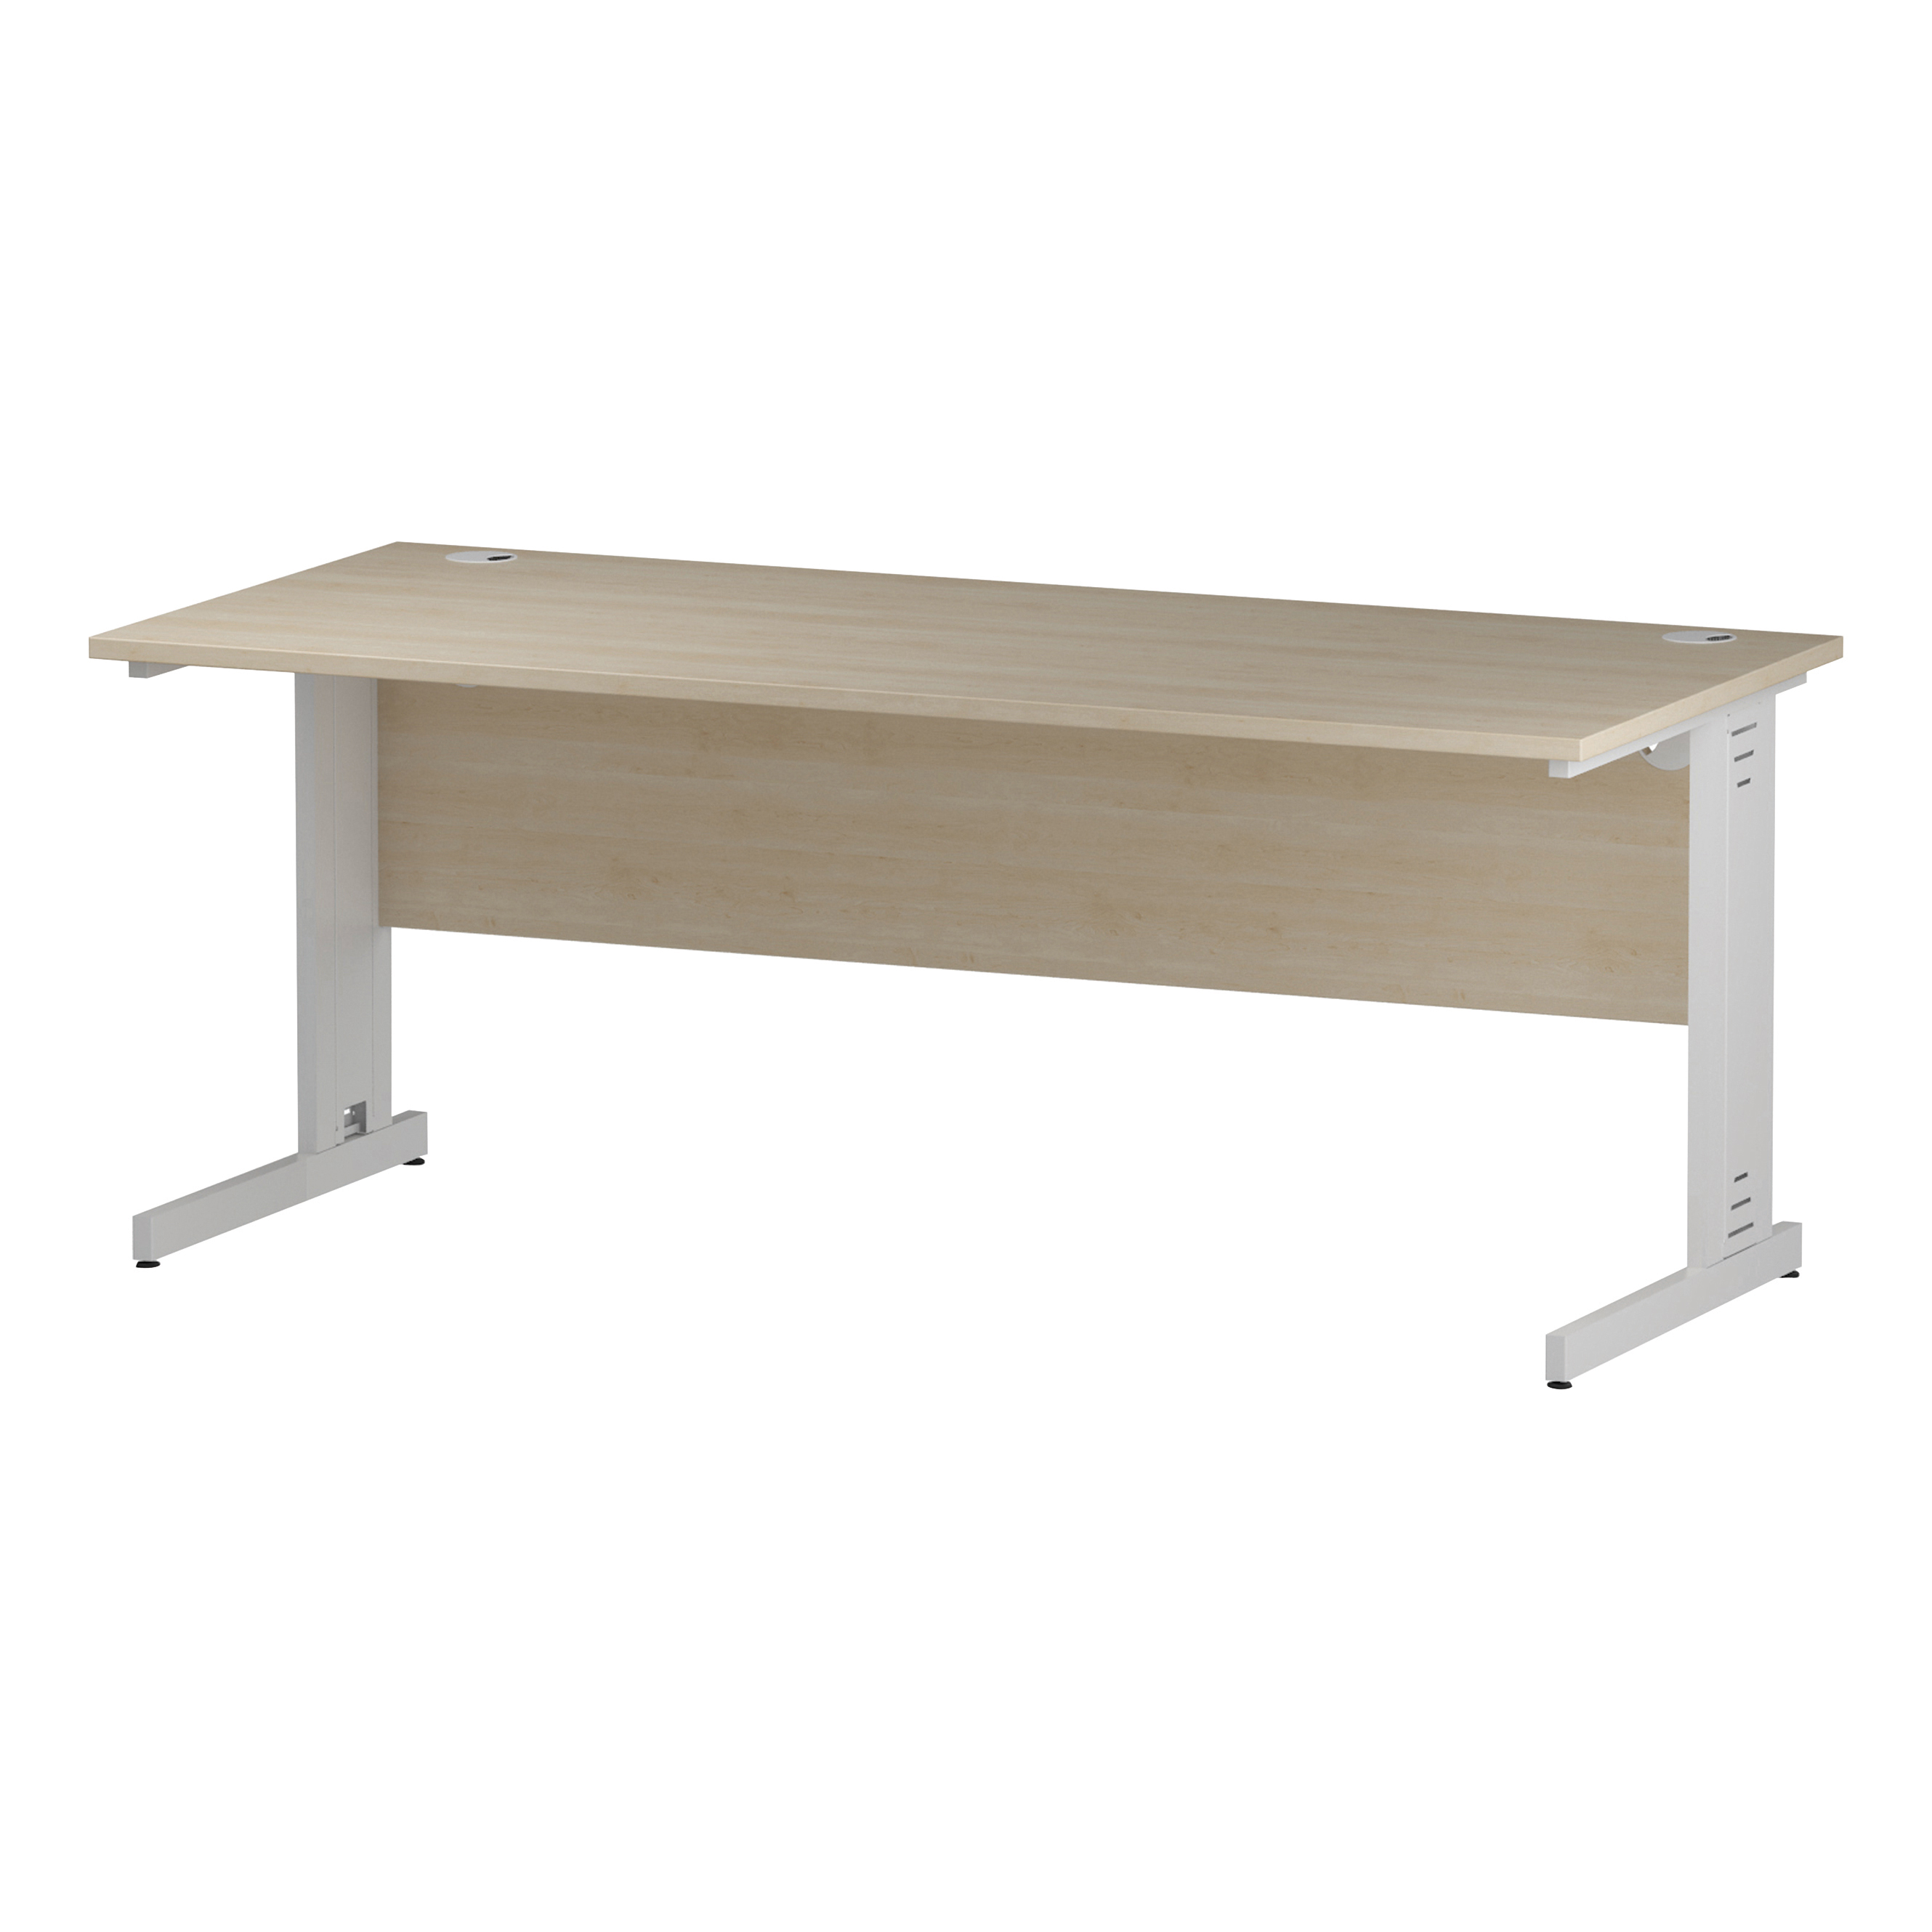 Trexus Rectangular Desk White Cable Managed Leg 1800x800mm Maple Ref I002500